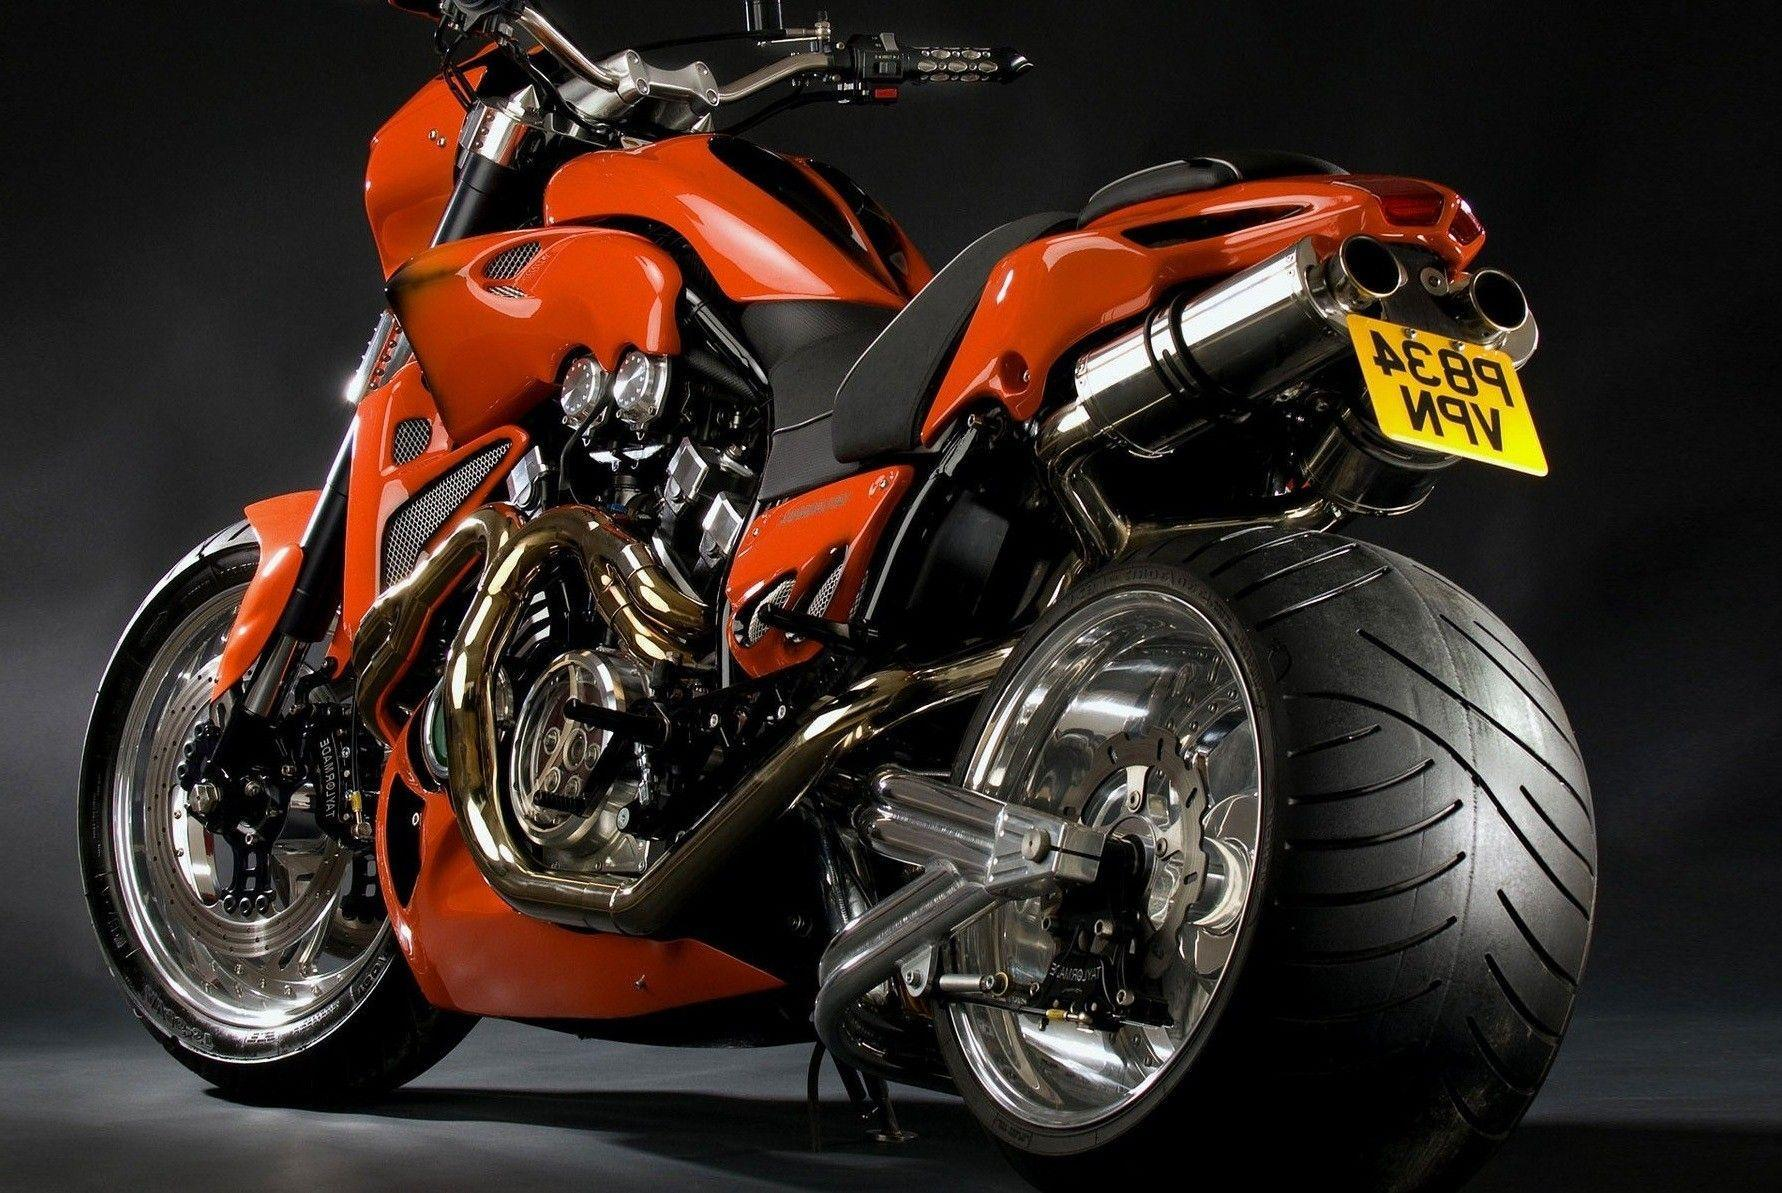 Sport Bikes Wallpapers For Android: Sport Bikes Wallpapers